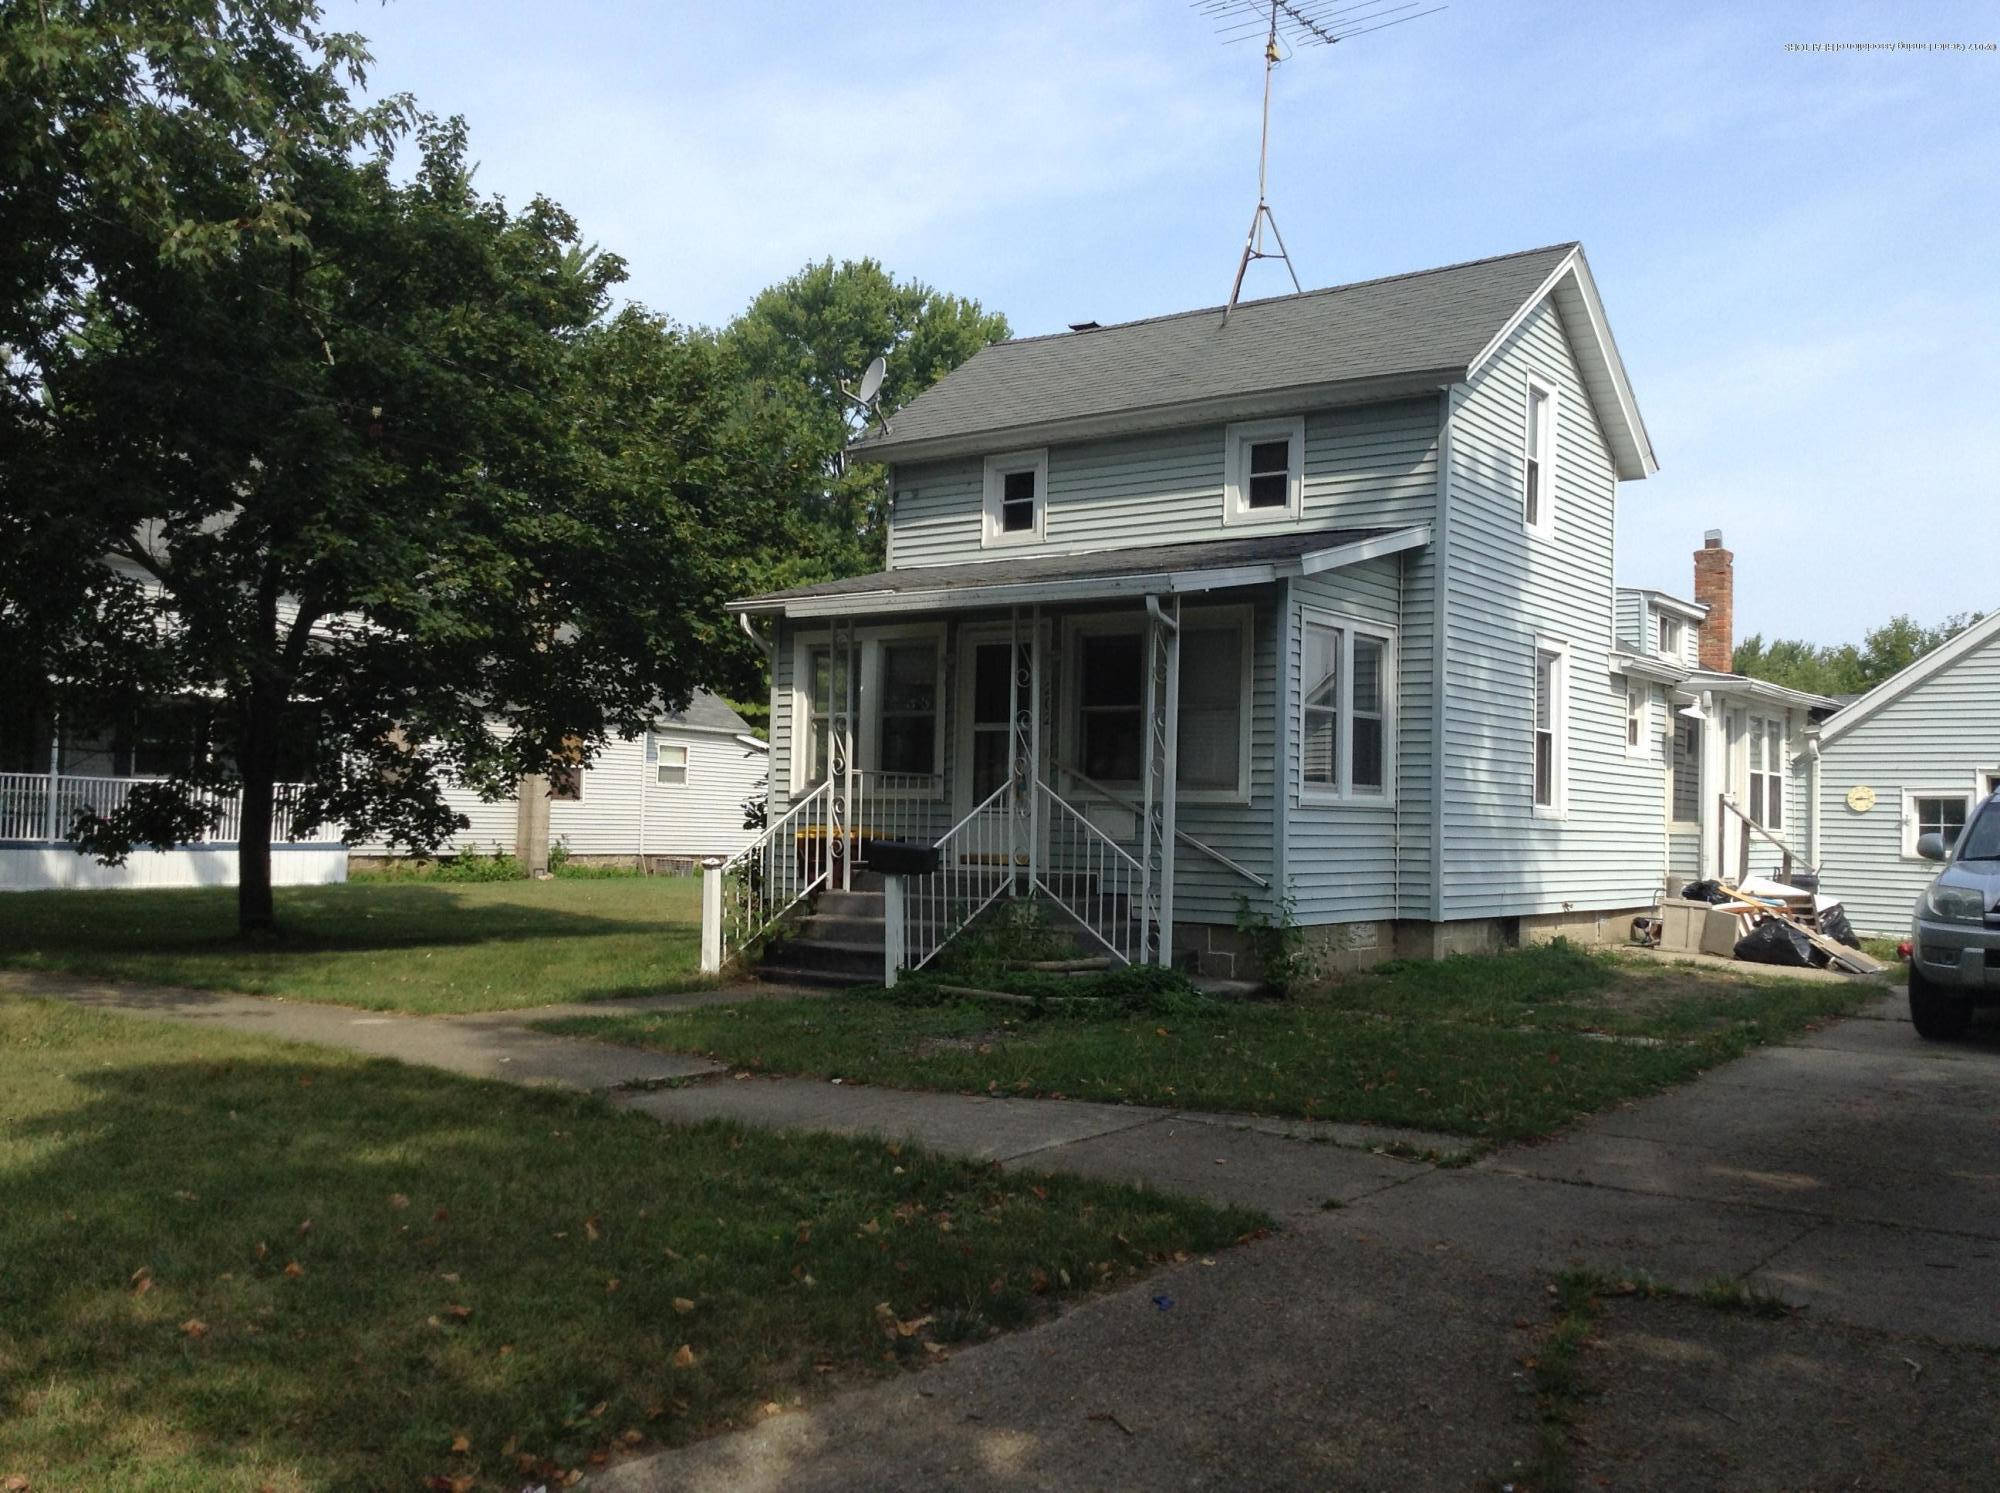 202 W Floral Ave - Floral - 1